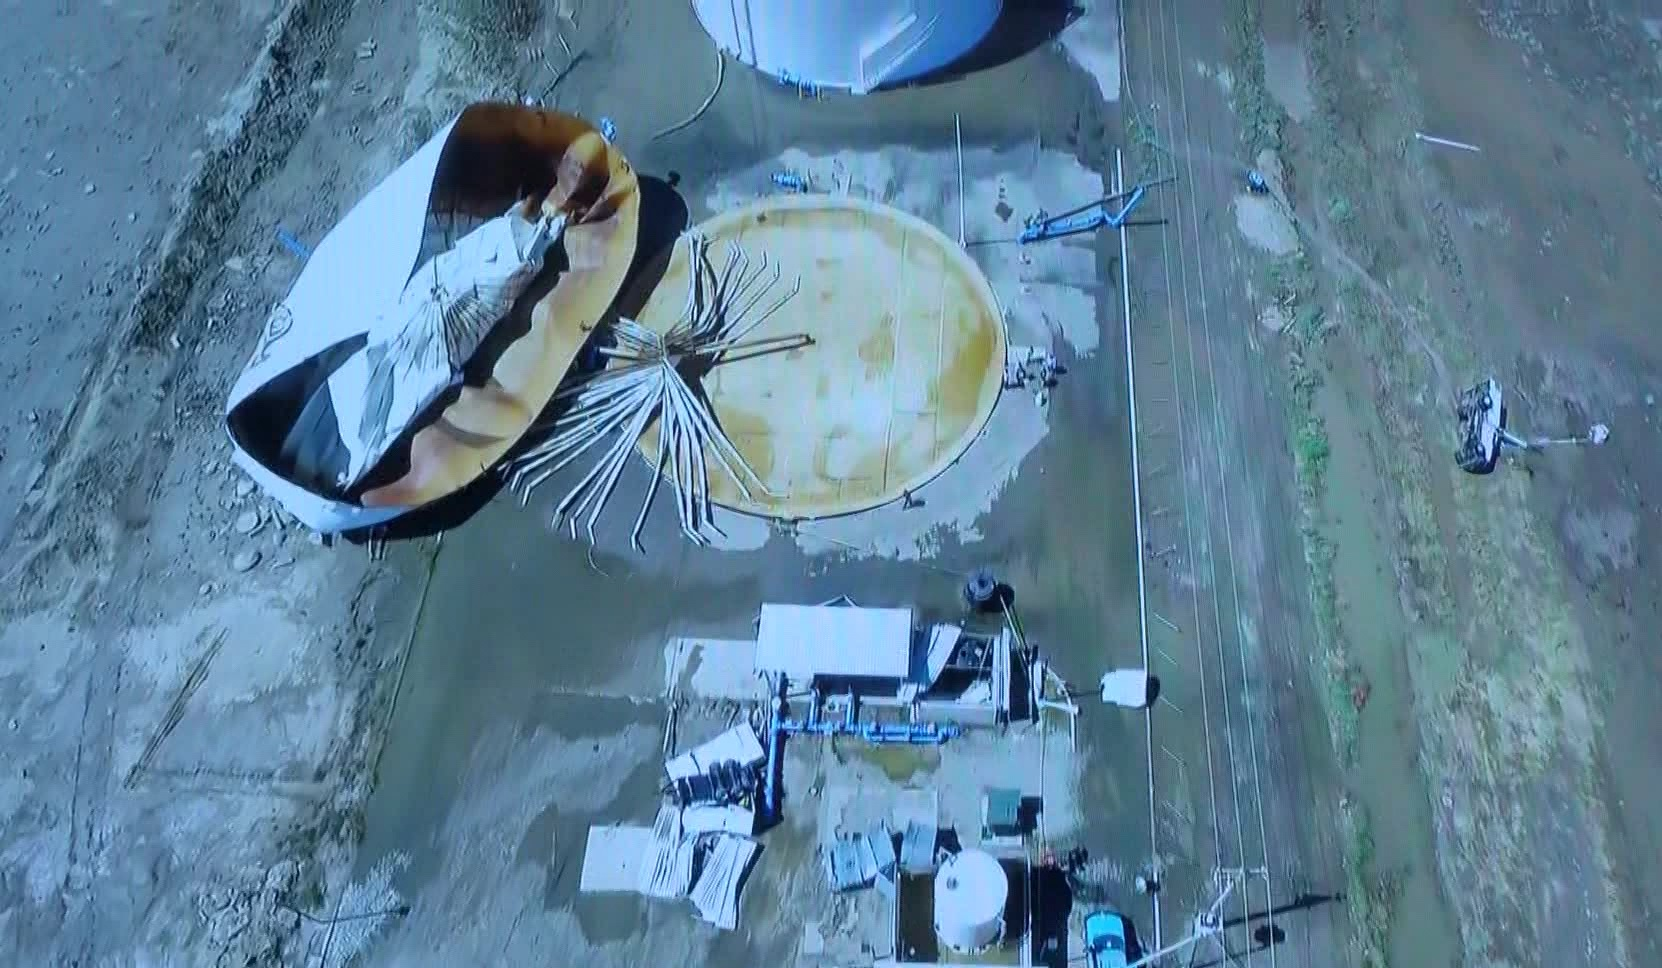 Lemoore restricts residents' water usage after deadly water tank explosion